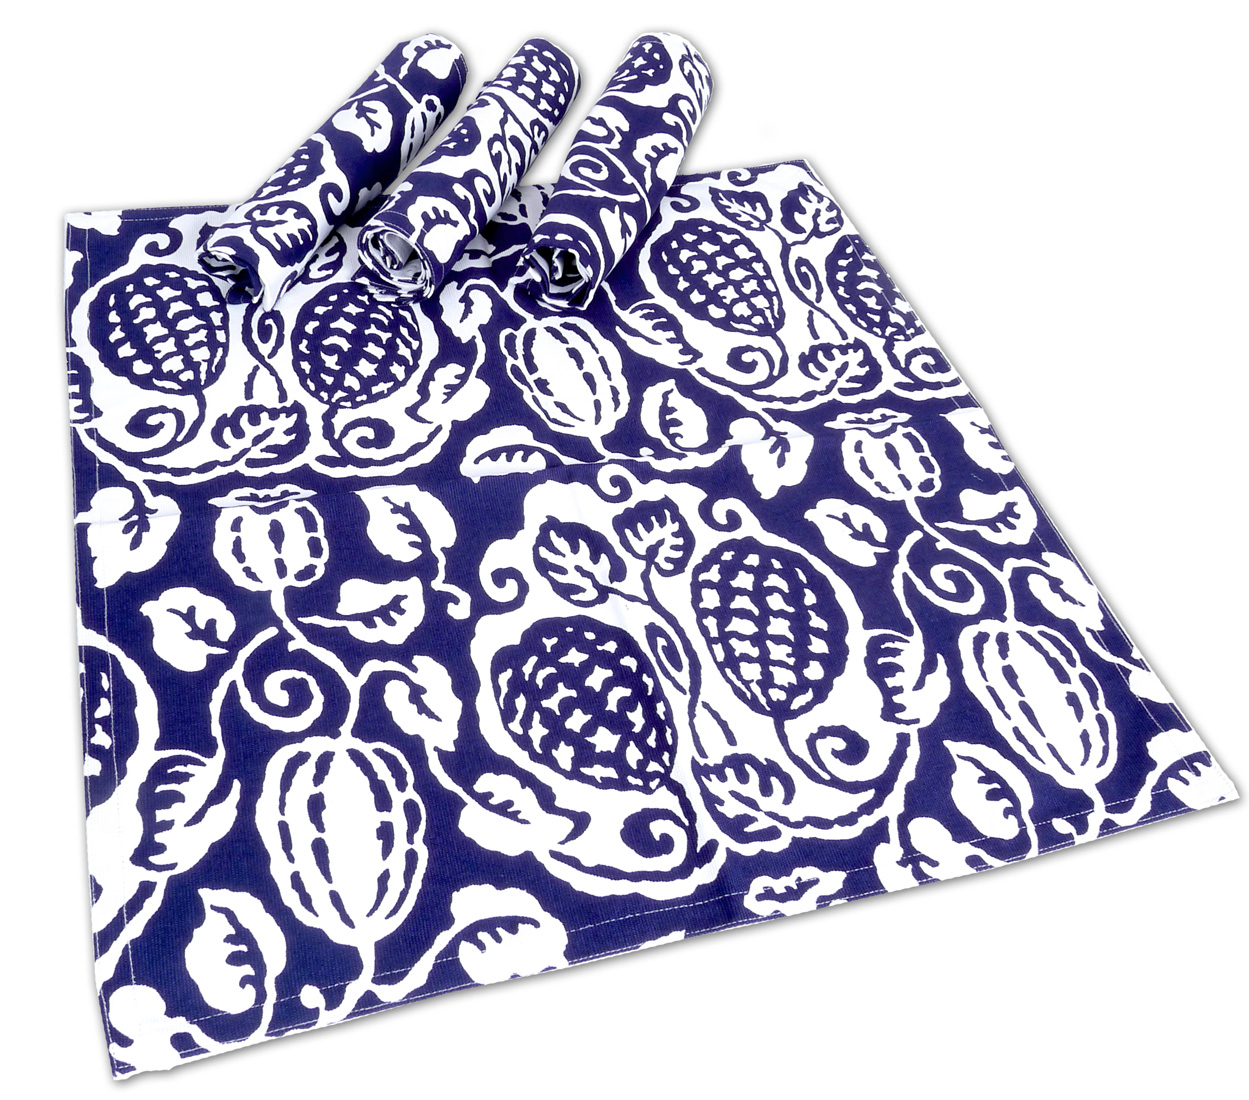 Image of Indigo Poppy Napkins, pack of 4